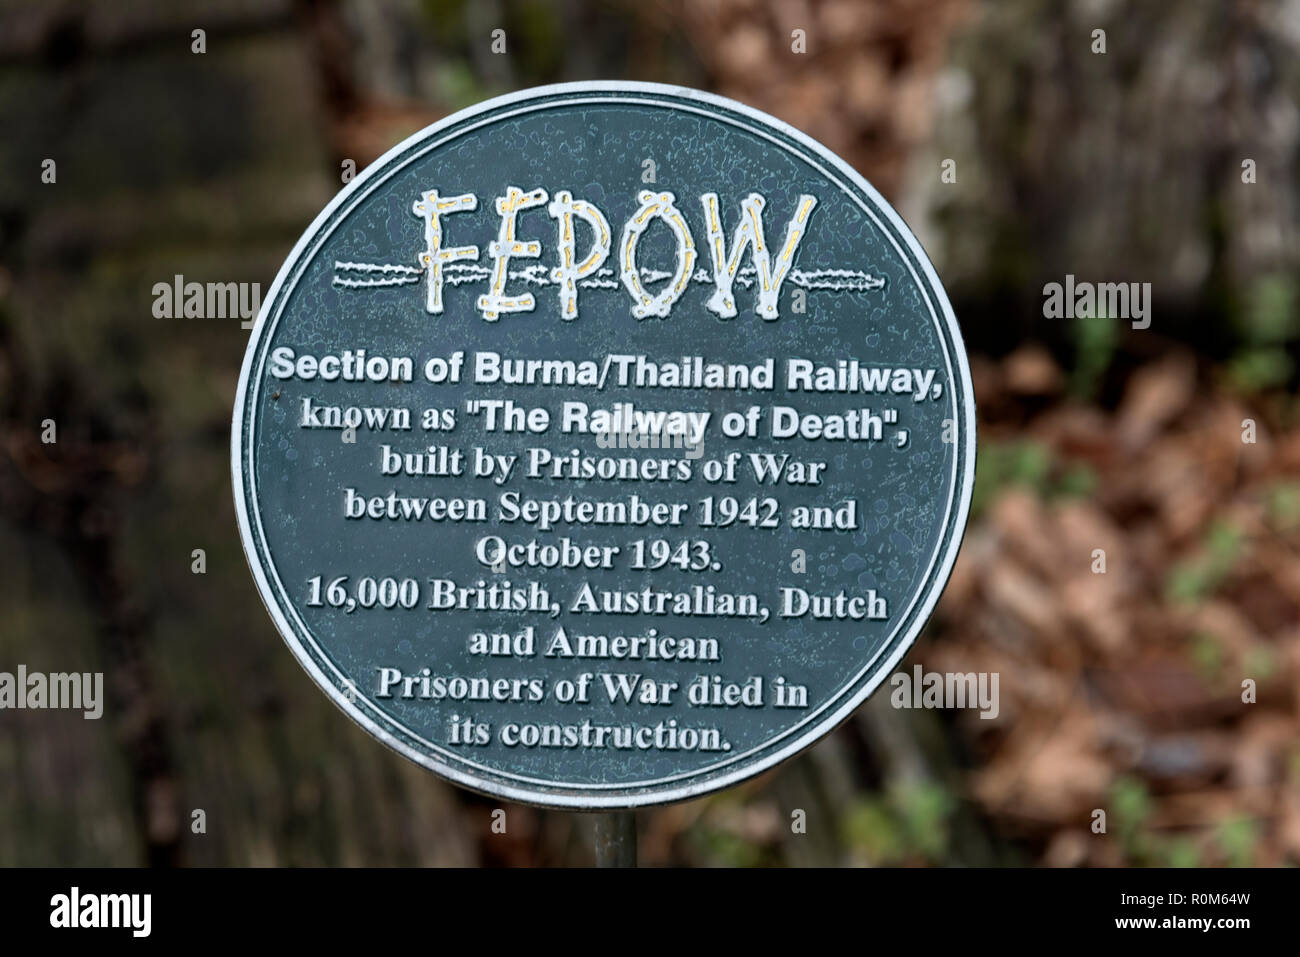 A plaque of the FEPOW (Far East Prisoners of War) close to the short rail track, as part of a World War 11 memorial to allied prisoners of war, who di - Stock Image